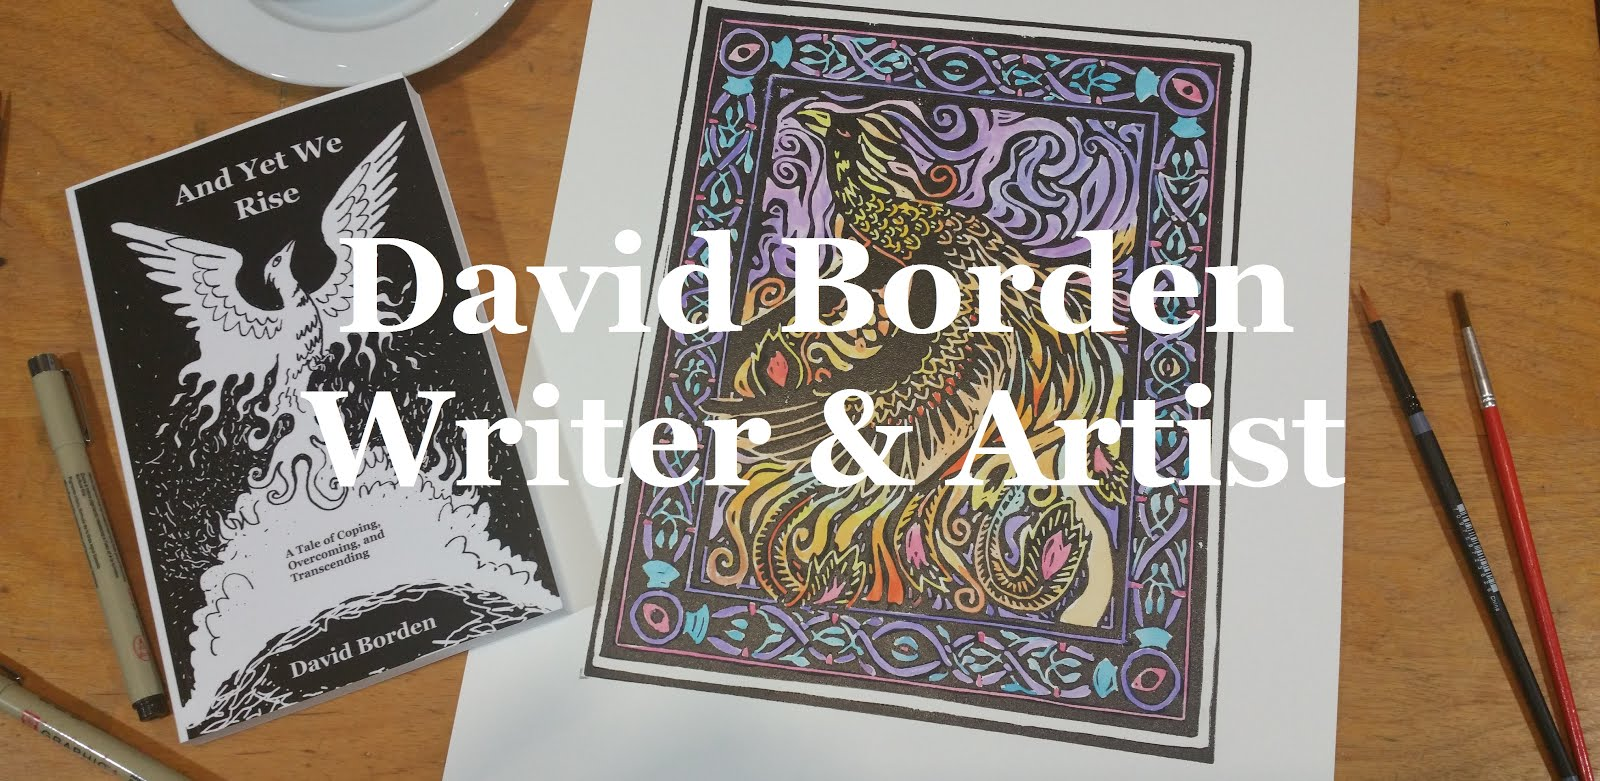 D S Borden: Award Winning Artist and Writer